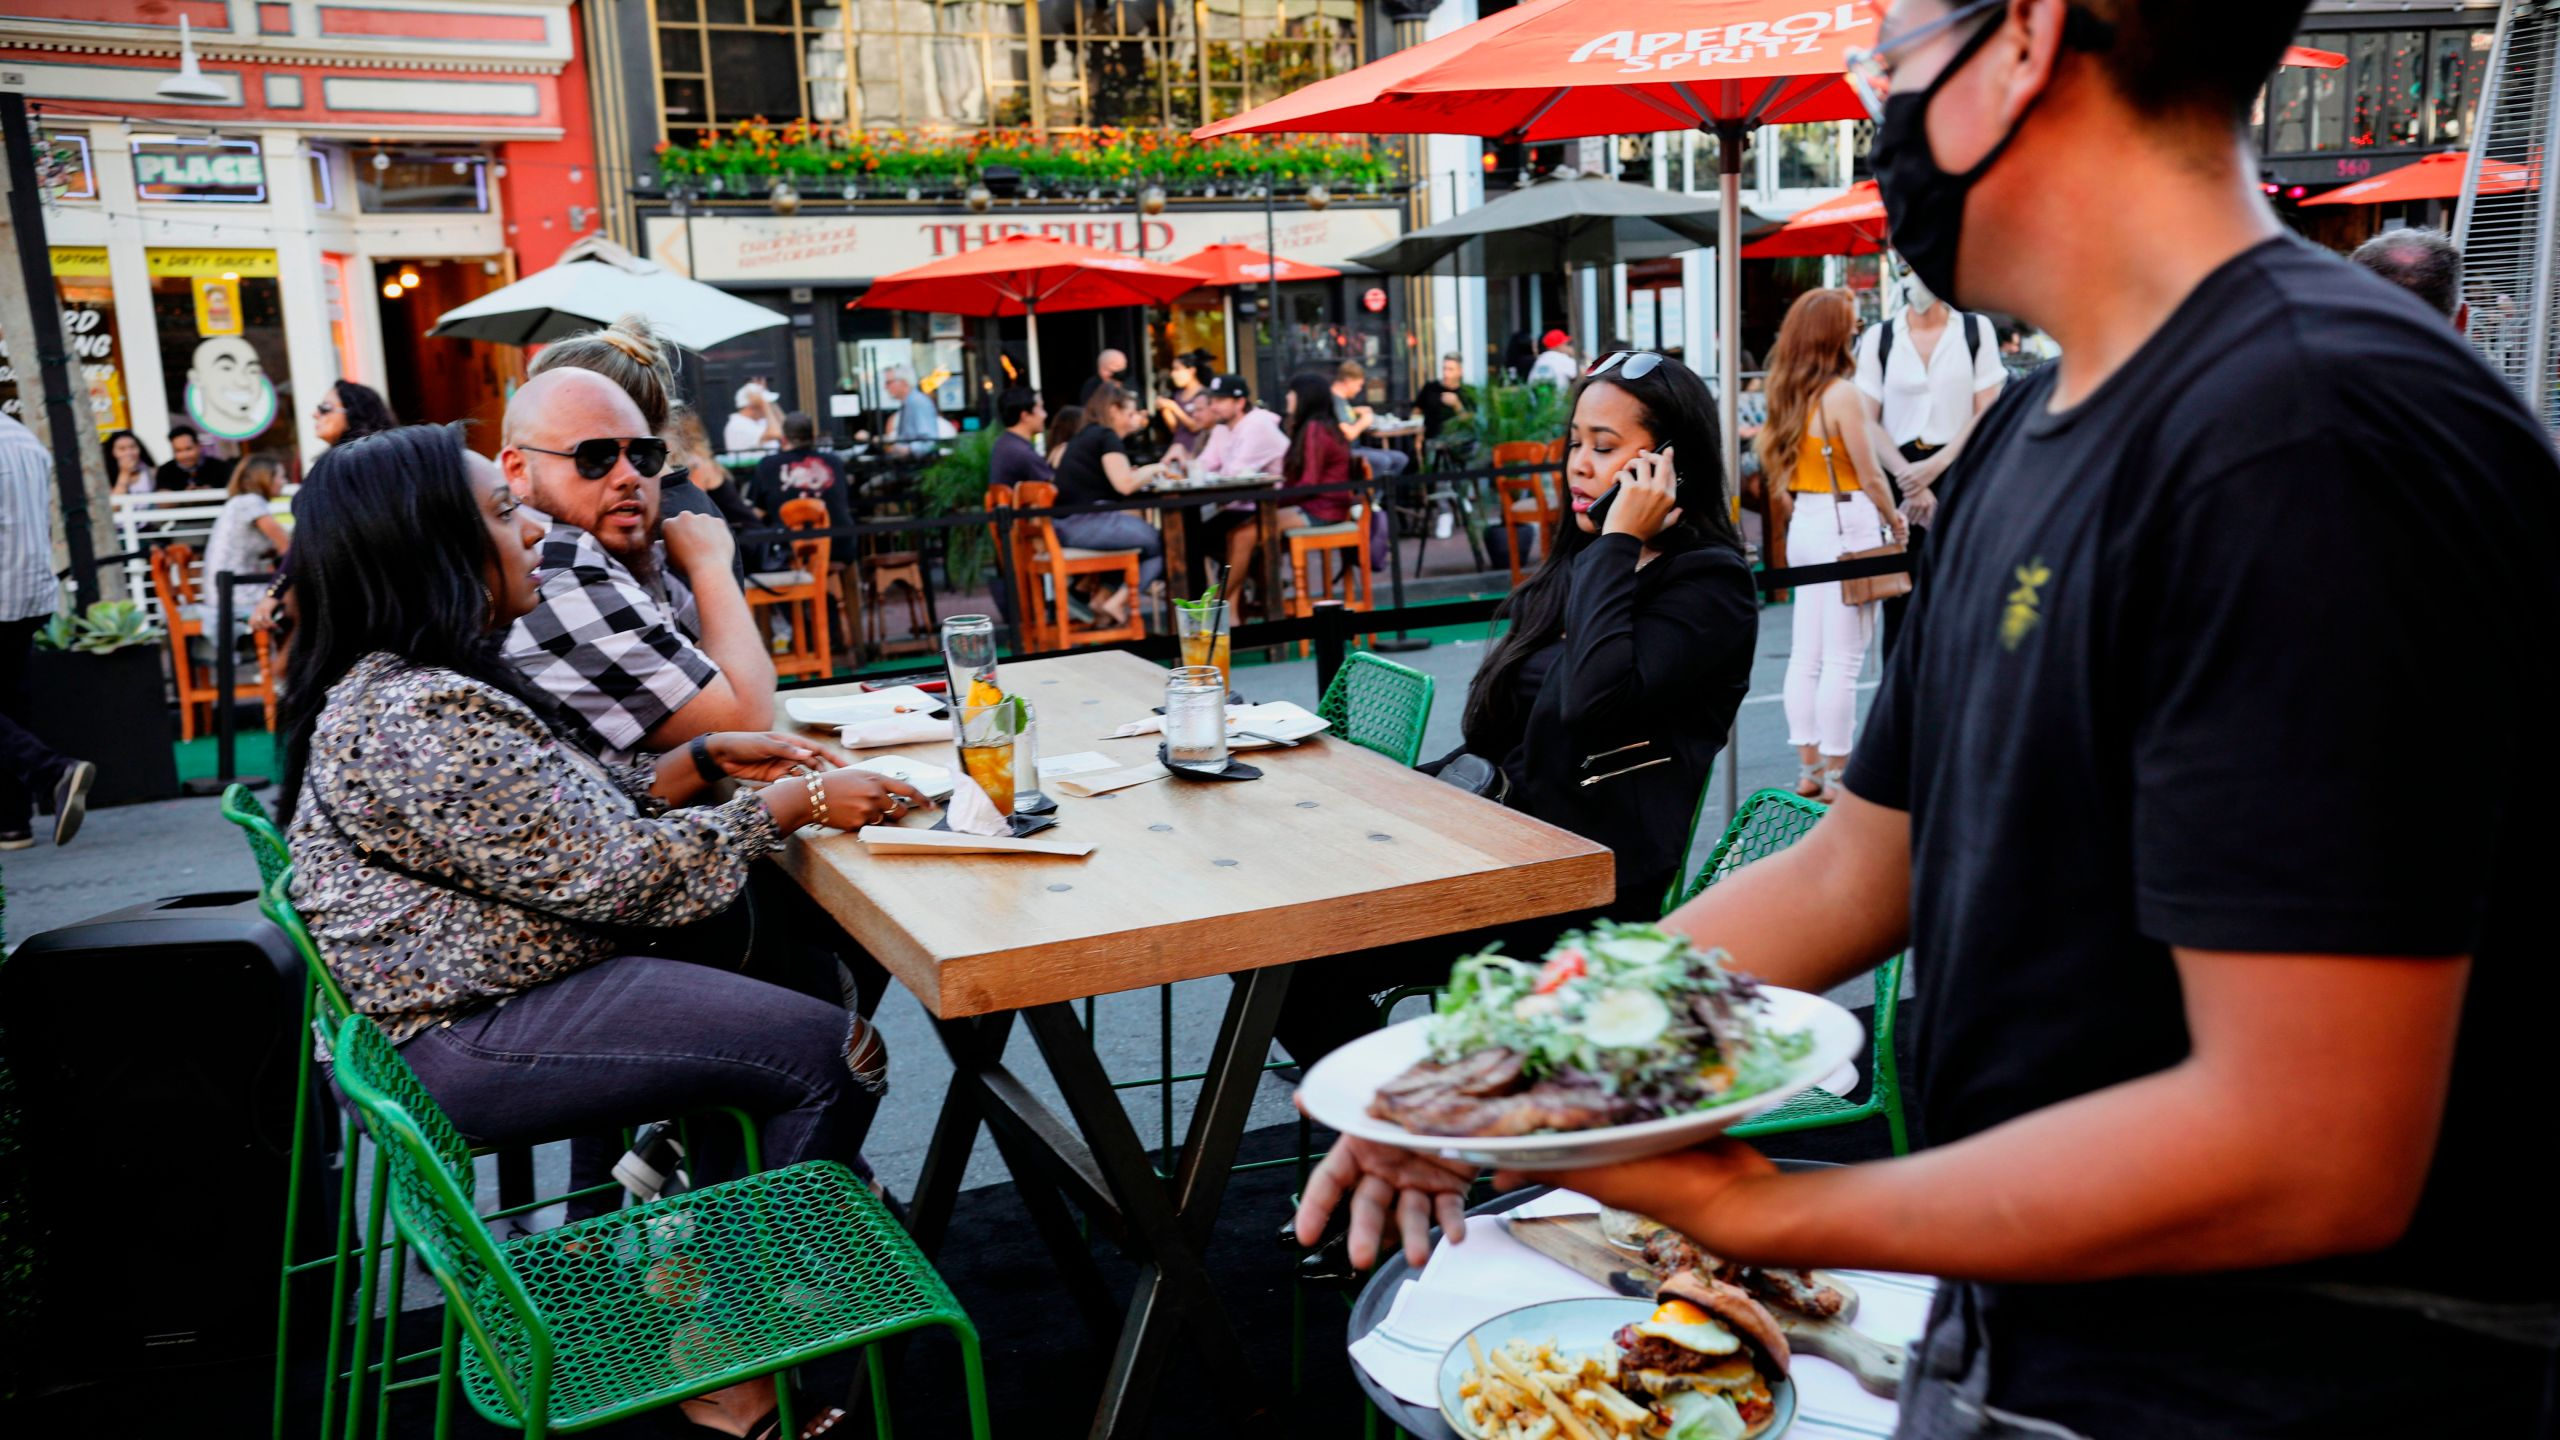 Patrons dine at an outdoor restaurant along 5th Avenue in The Gaslamp Quarter in downtown San Diego, California on, July 17, 2020. (Sandy Huffaker/AFP via Getty Images)